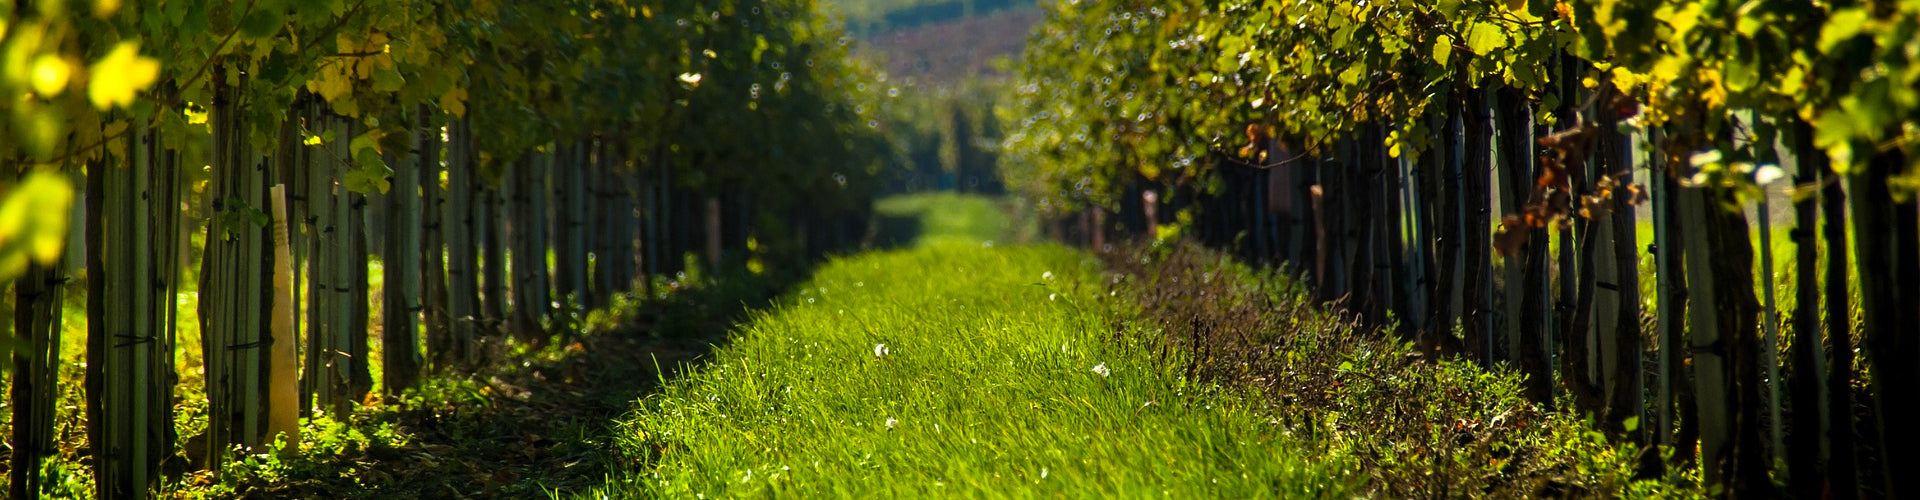 Organic Vines in Vineyard